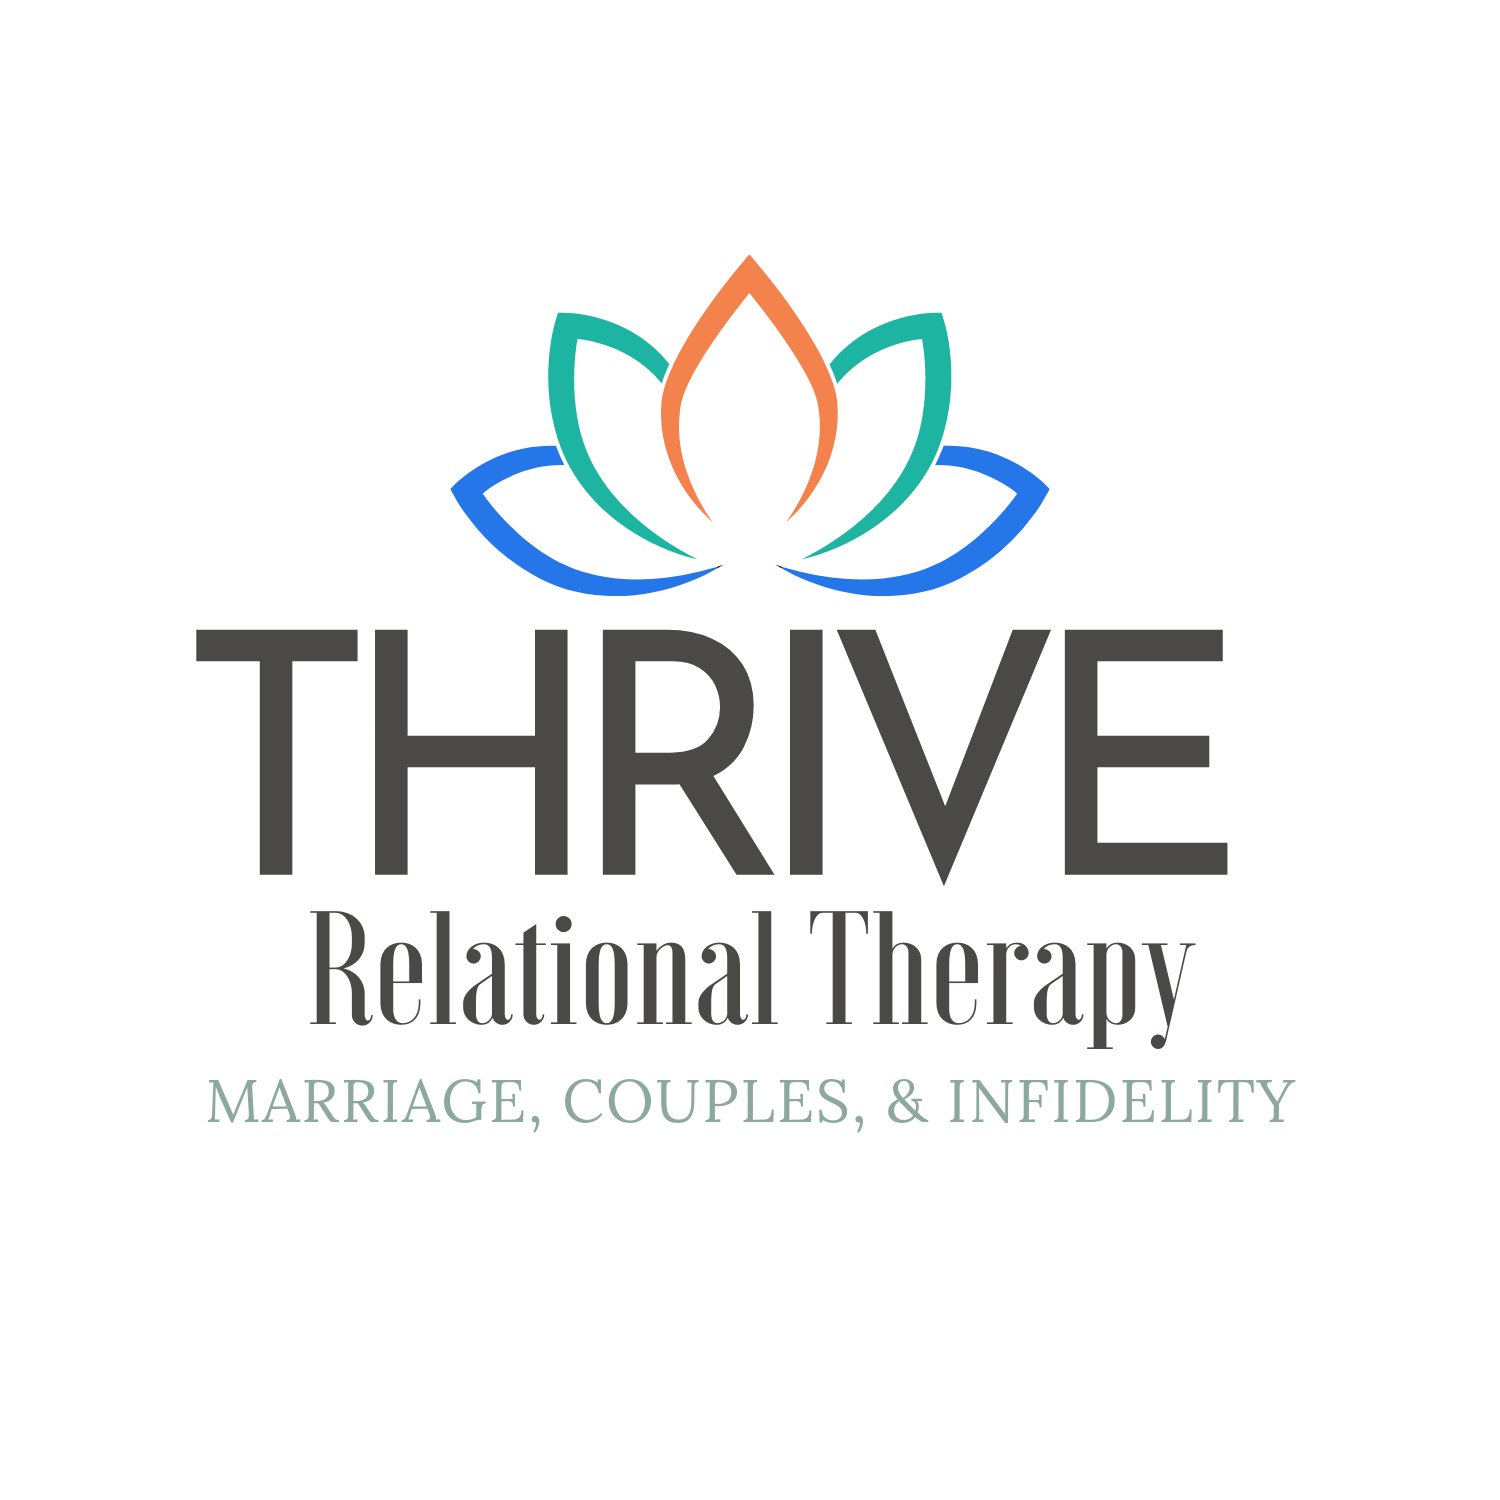 Thrive Relational Therapy – Marriage, Couples & Infidelity Online Video Counseling of Vancouver